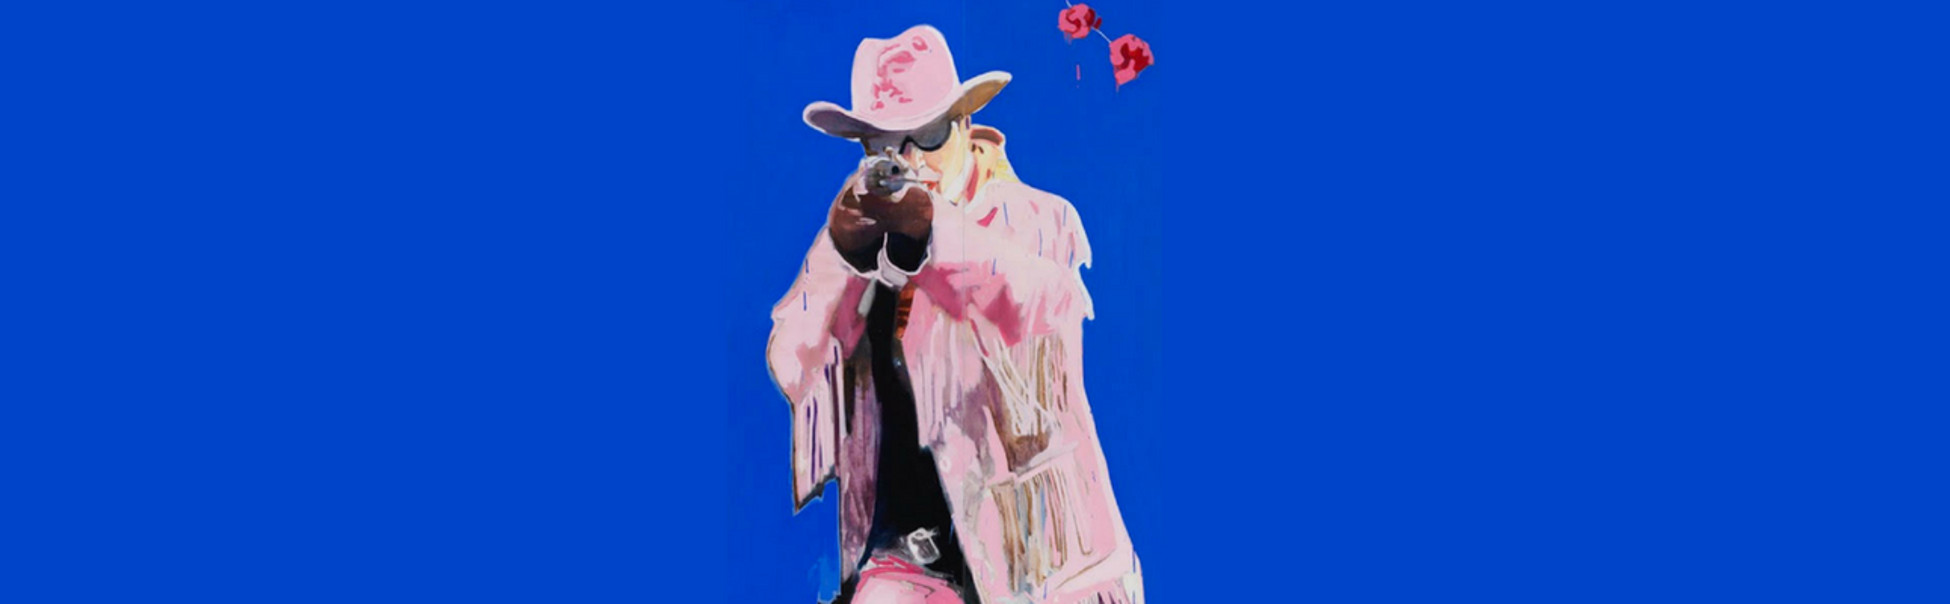 Painting Trish Wylie Bang Bang Roses, promotion for Corn Exchange production of The Misfits by Arthur Miller